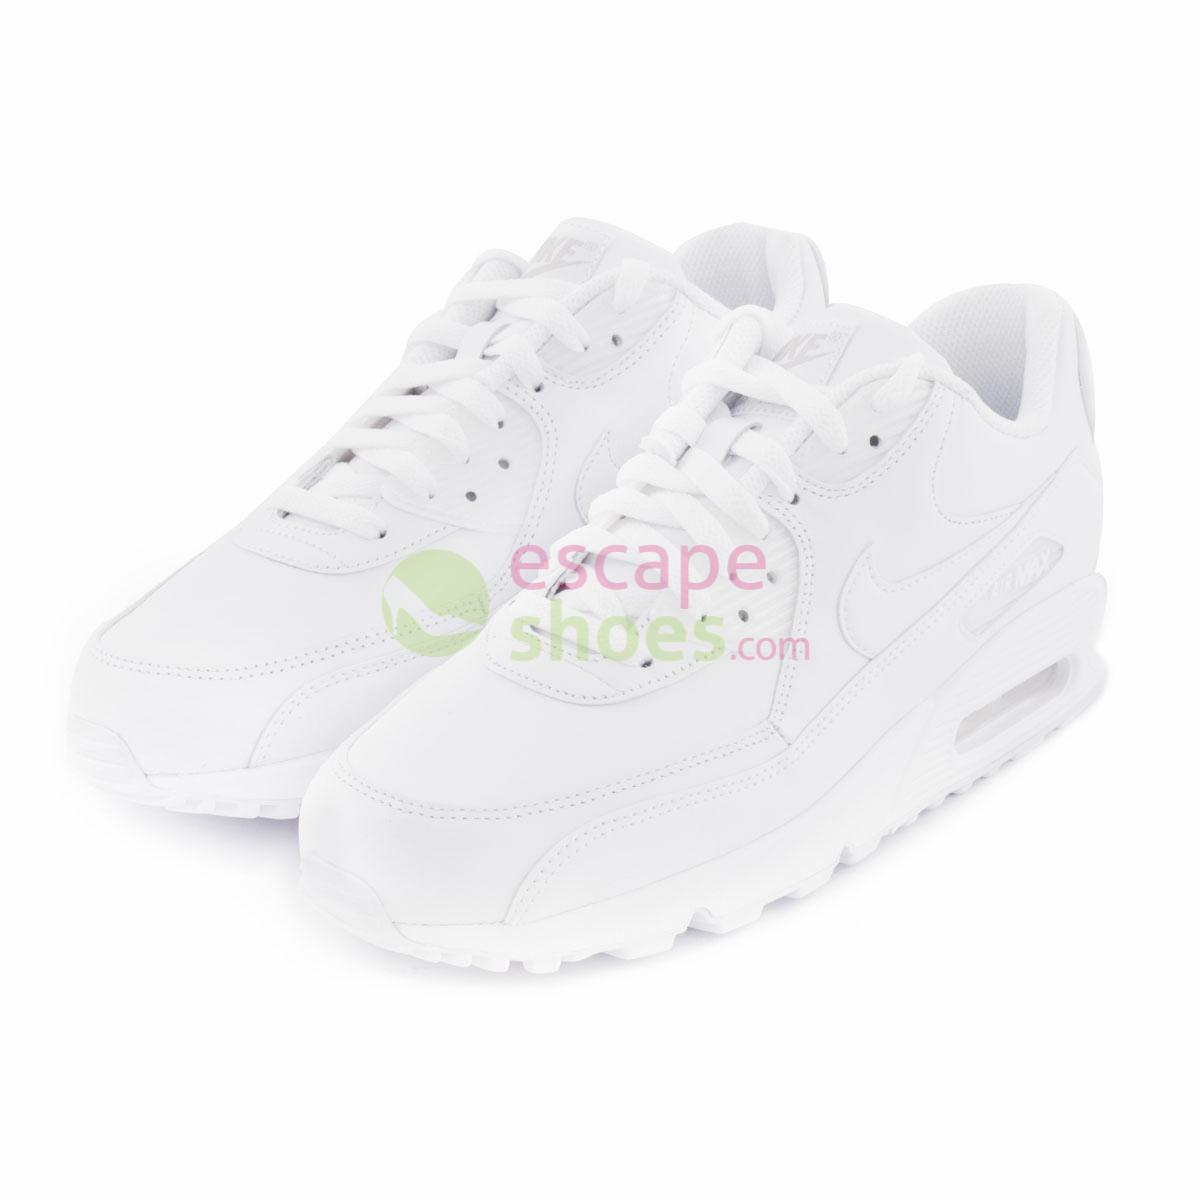 Compre aqui NIKE Air Max 90 Leather White 302519 113  c0fd3c7ee3c0d